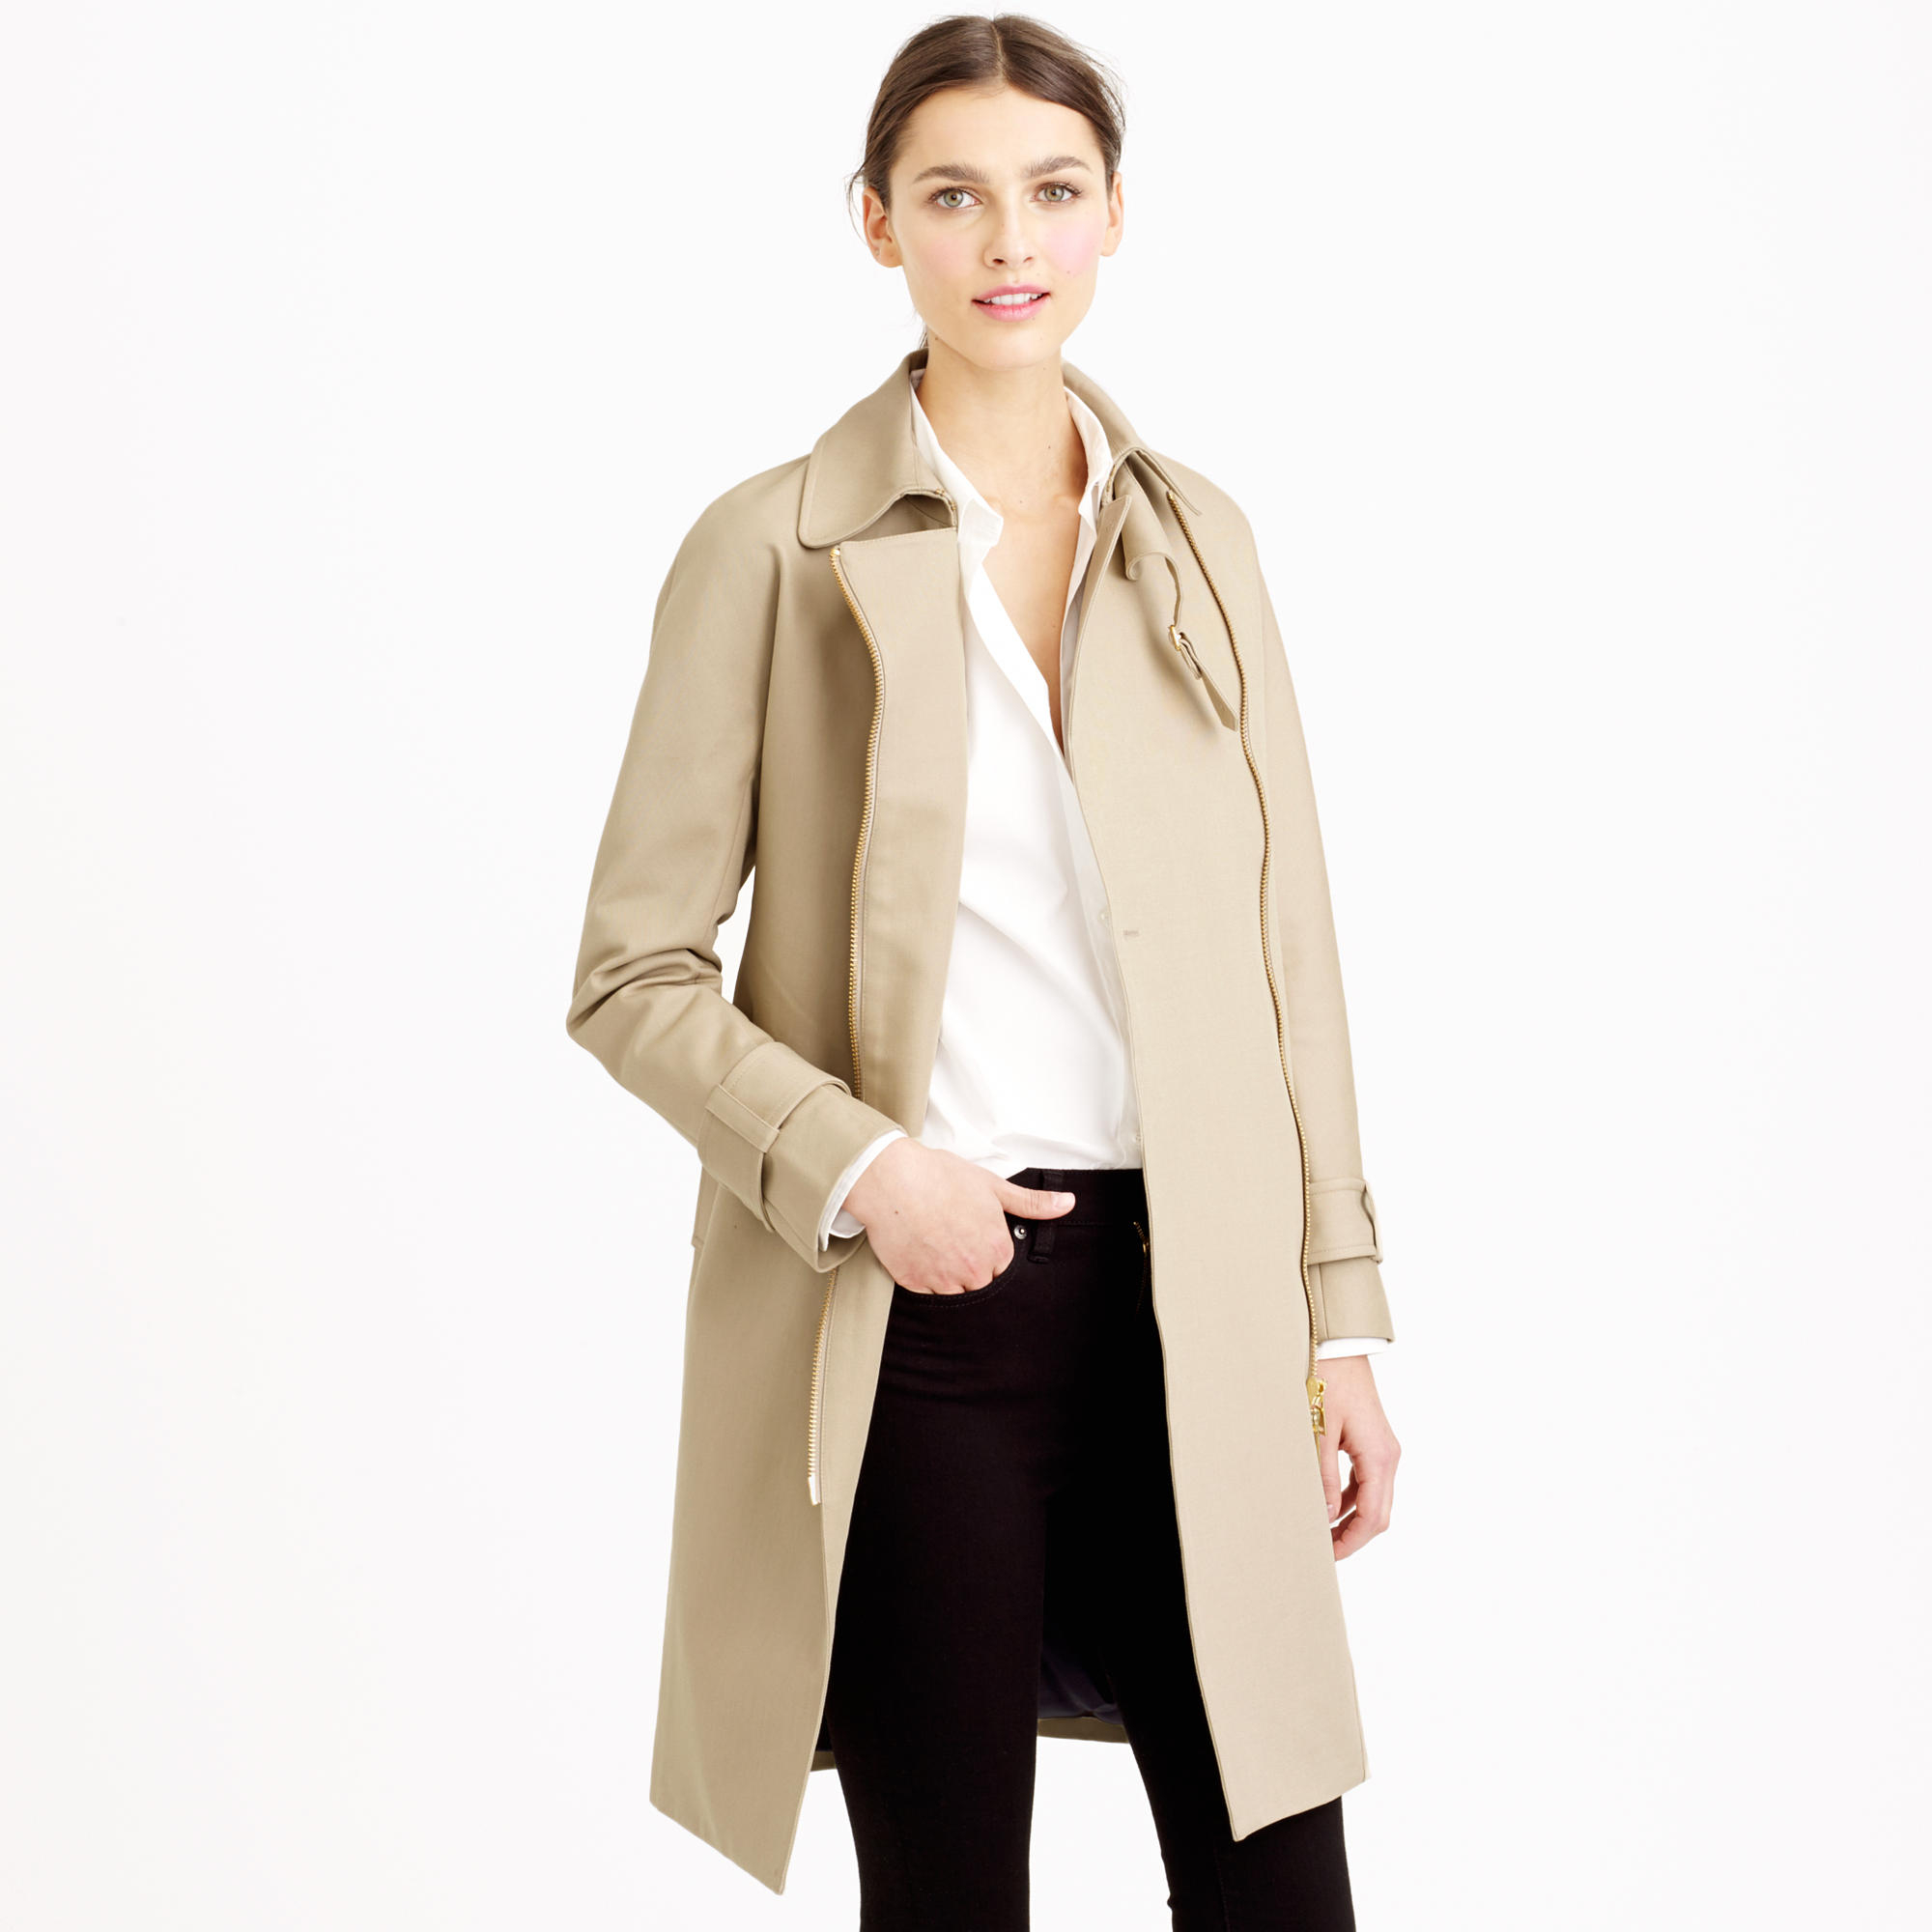 911661ea469 Corporate Monday Trench Coat With Structured Knit Zip Dress